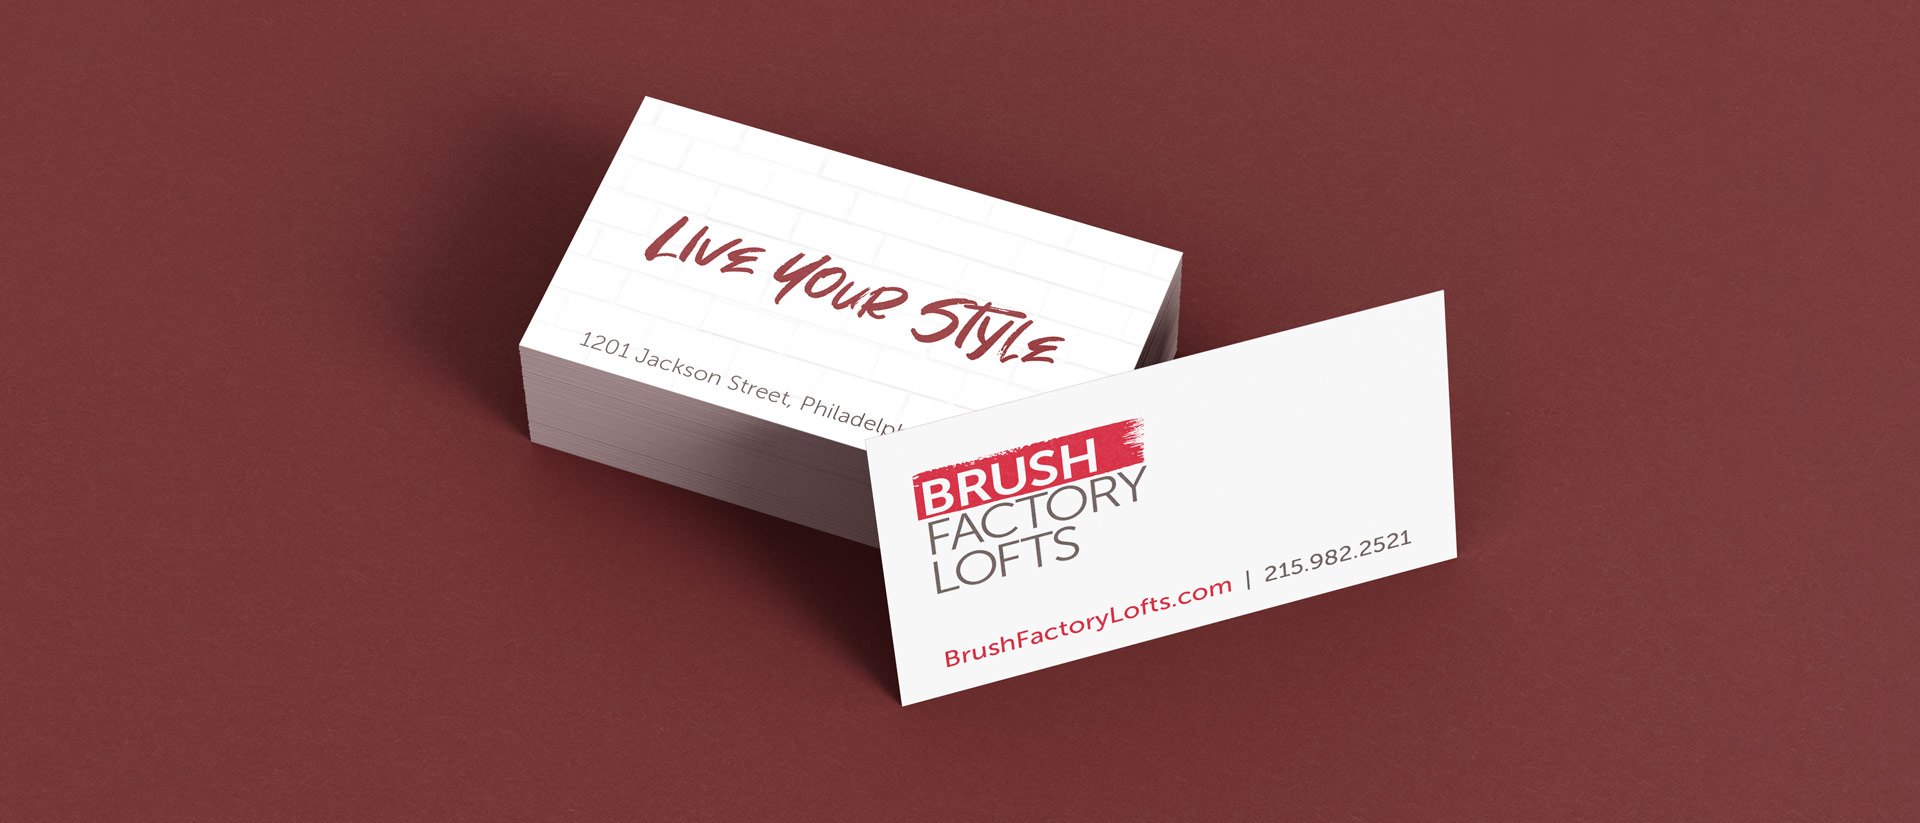 Brand Identity for Brush Factory Lofts in Philadelphia